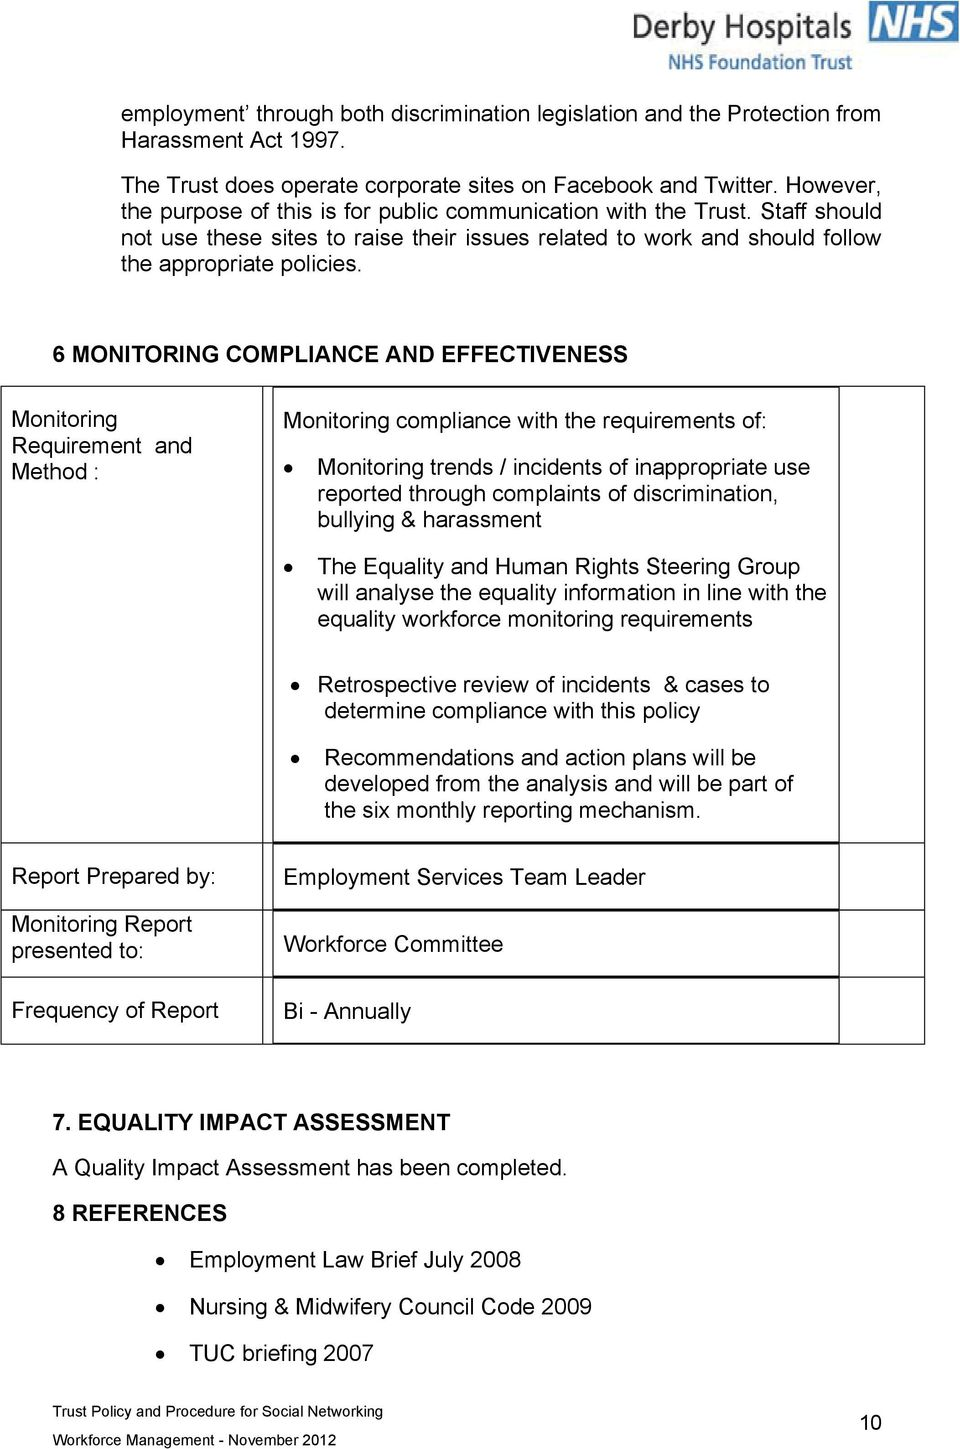 6 MONITORING COMPLIANCE AND EFFECTIVENESS Monitoring Requirement and Method : Monitoring compliance with the requirements of: Monitoring trends / incidents of inappropriate use reported through